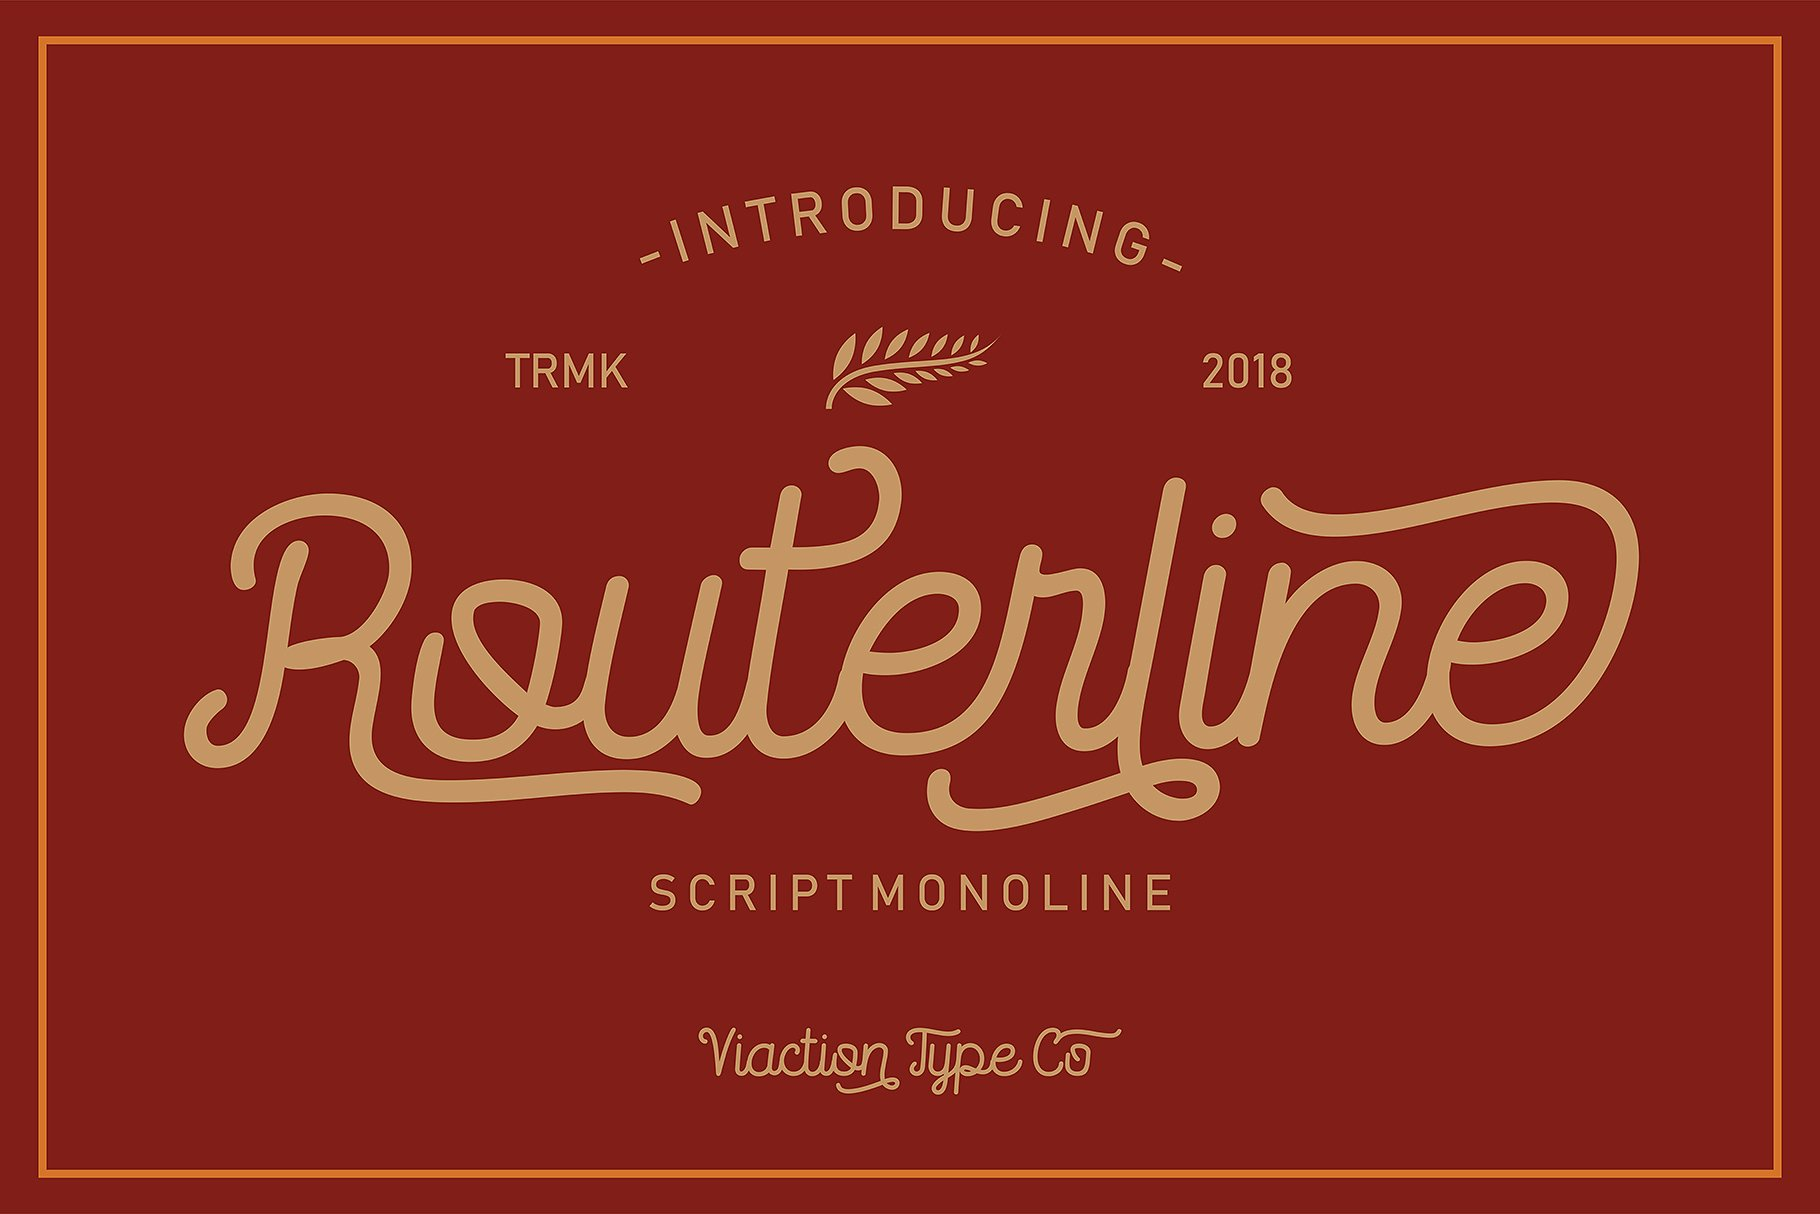 Routerline Typeface